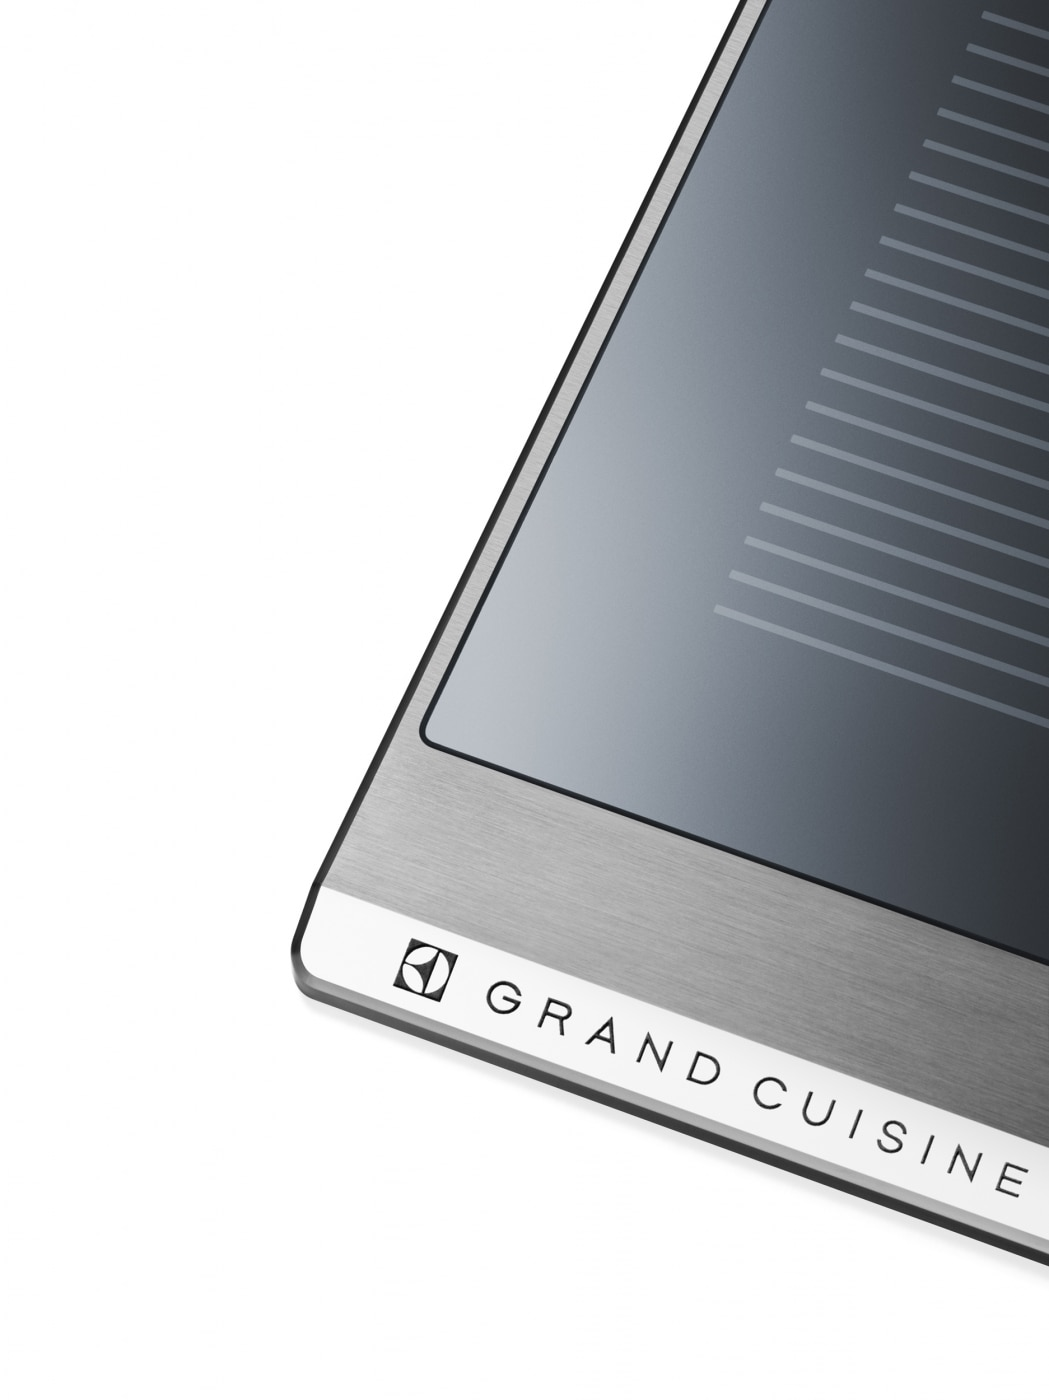 Cuisine Induction Electrolux Launches The First And Only Professional Cooking System